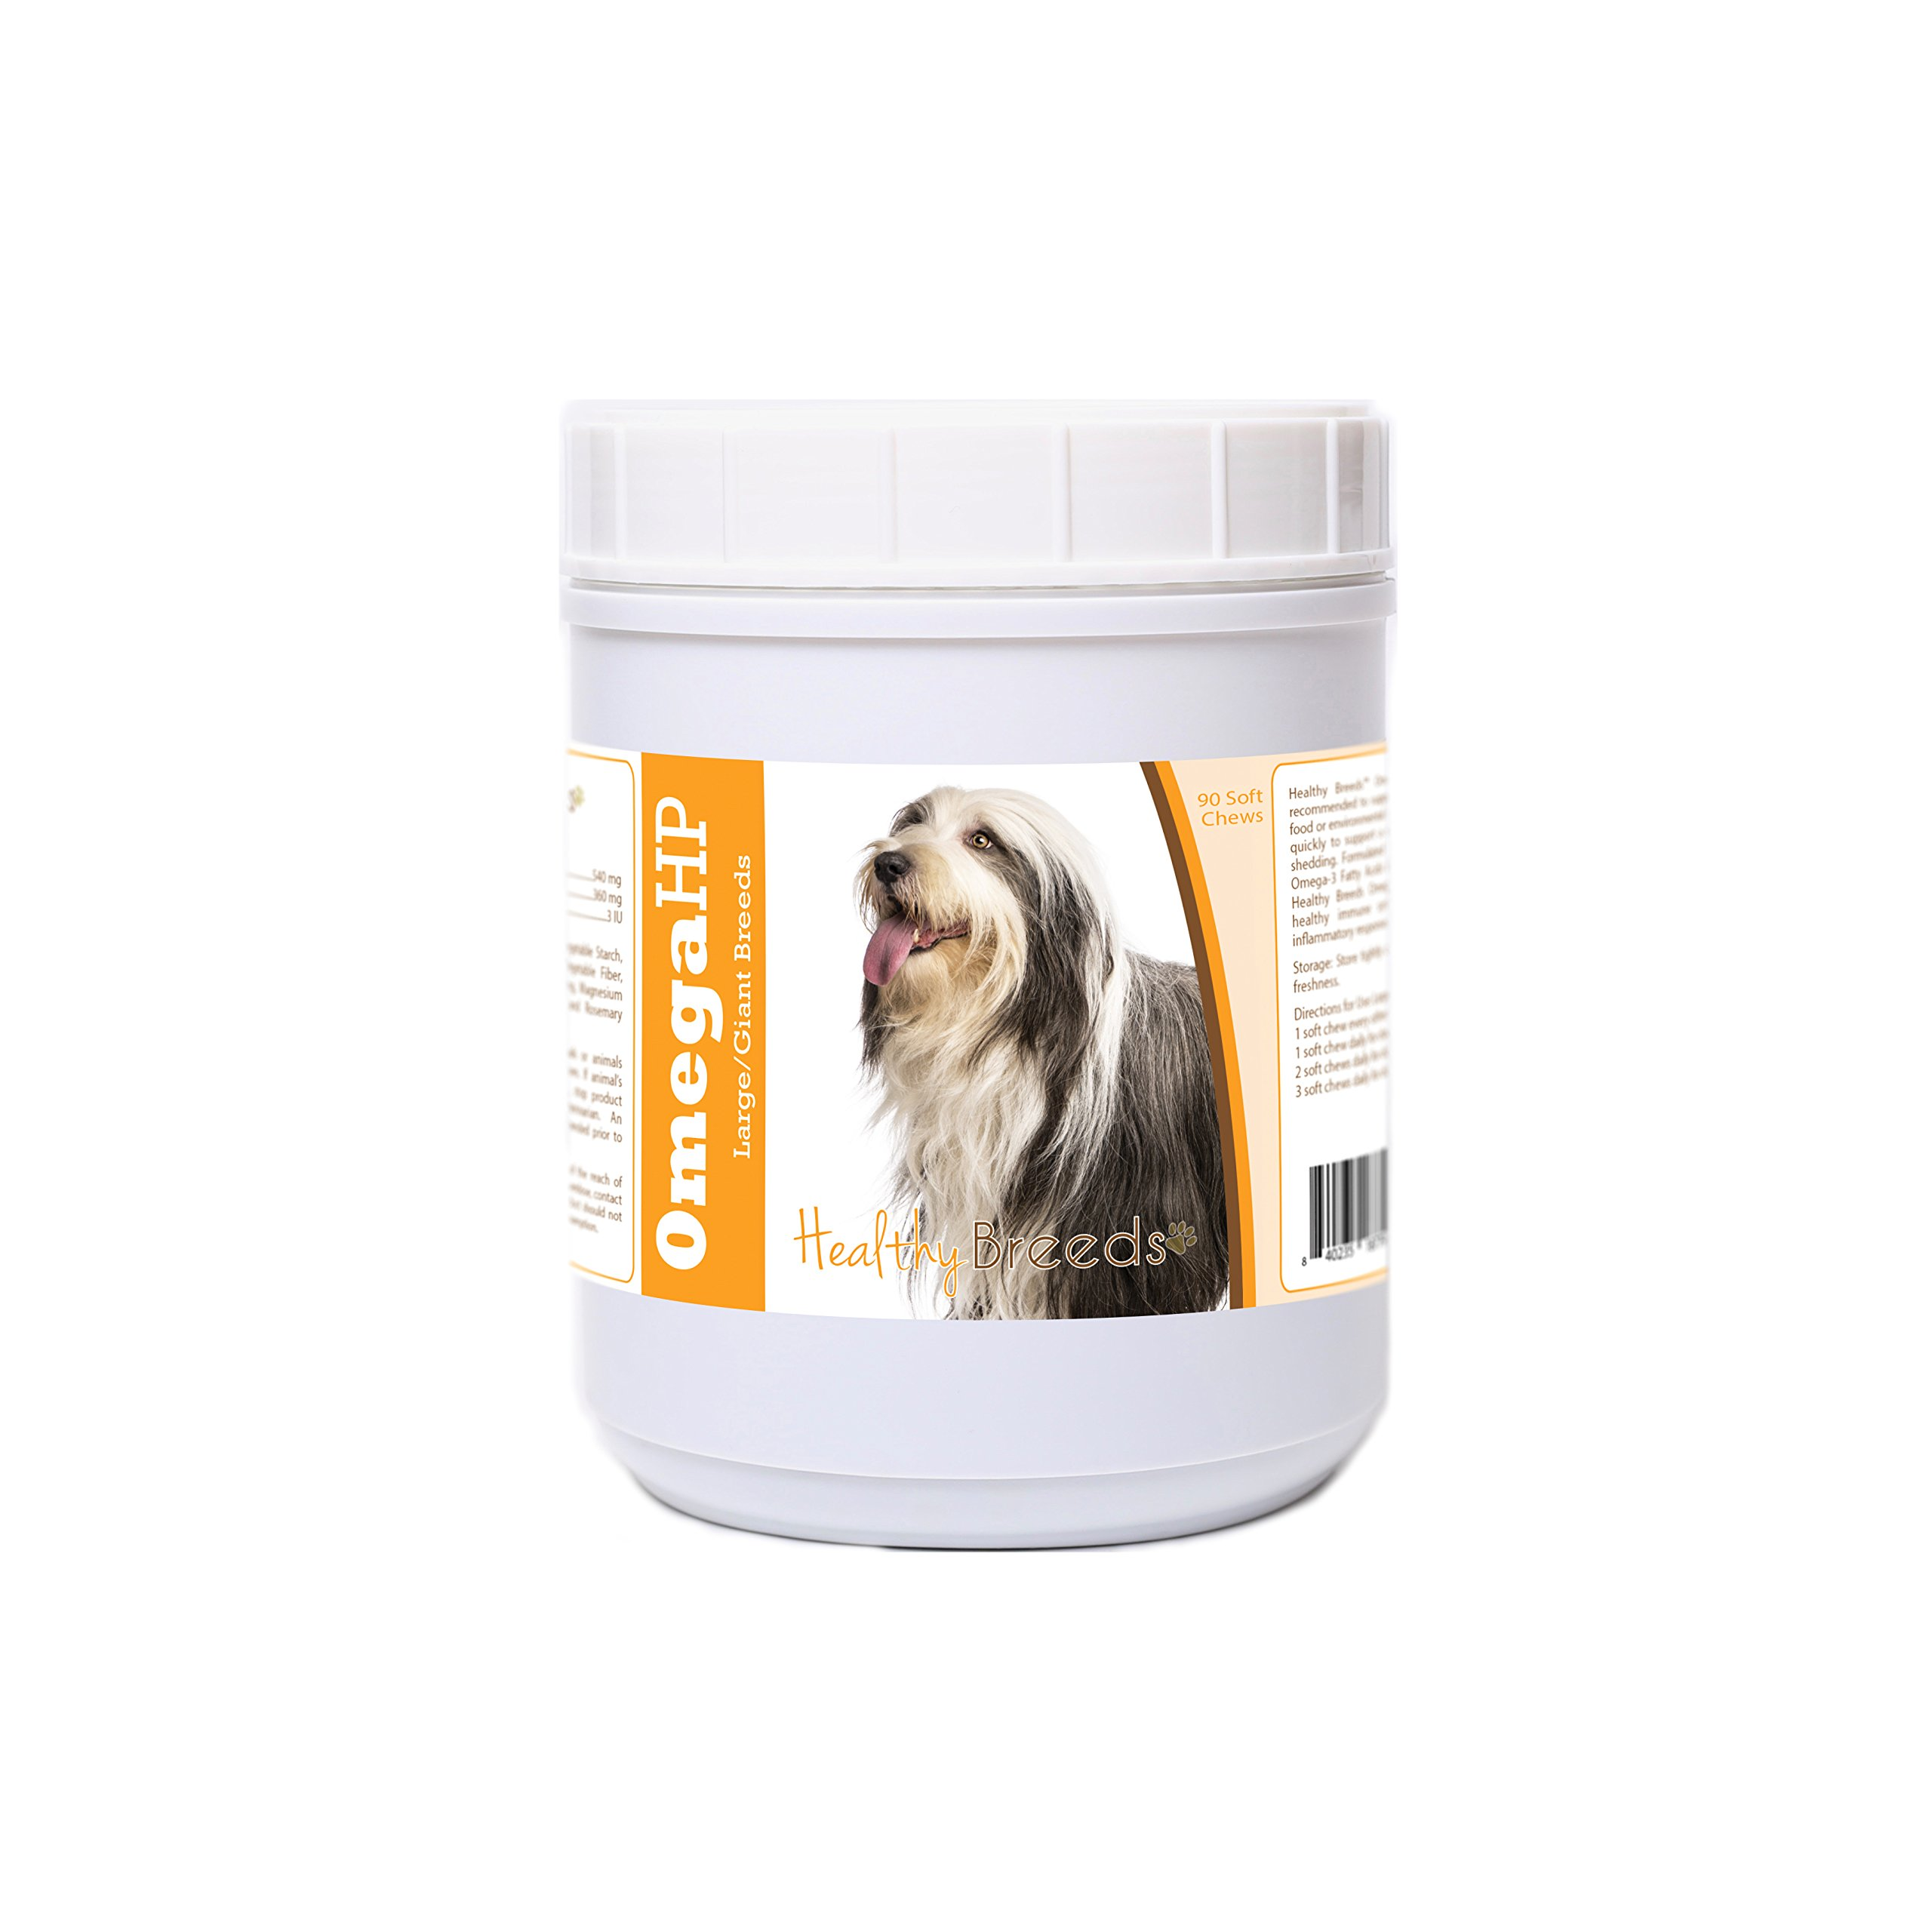 Healthy Breeds Dog Omega 3 Supplement Soft Chews for Bearded Collie - OVER 100 BREEDS - EPA & DHA Fatty Acids - Medium & Large Breed Formula - 90 Count by Healthy Breeds